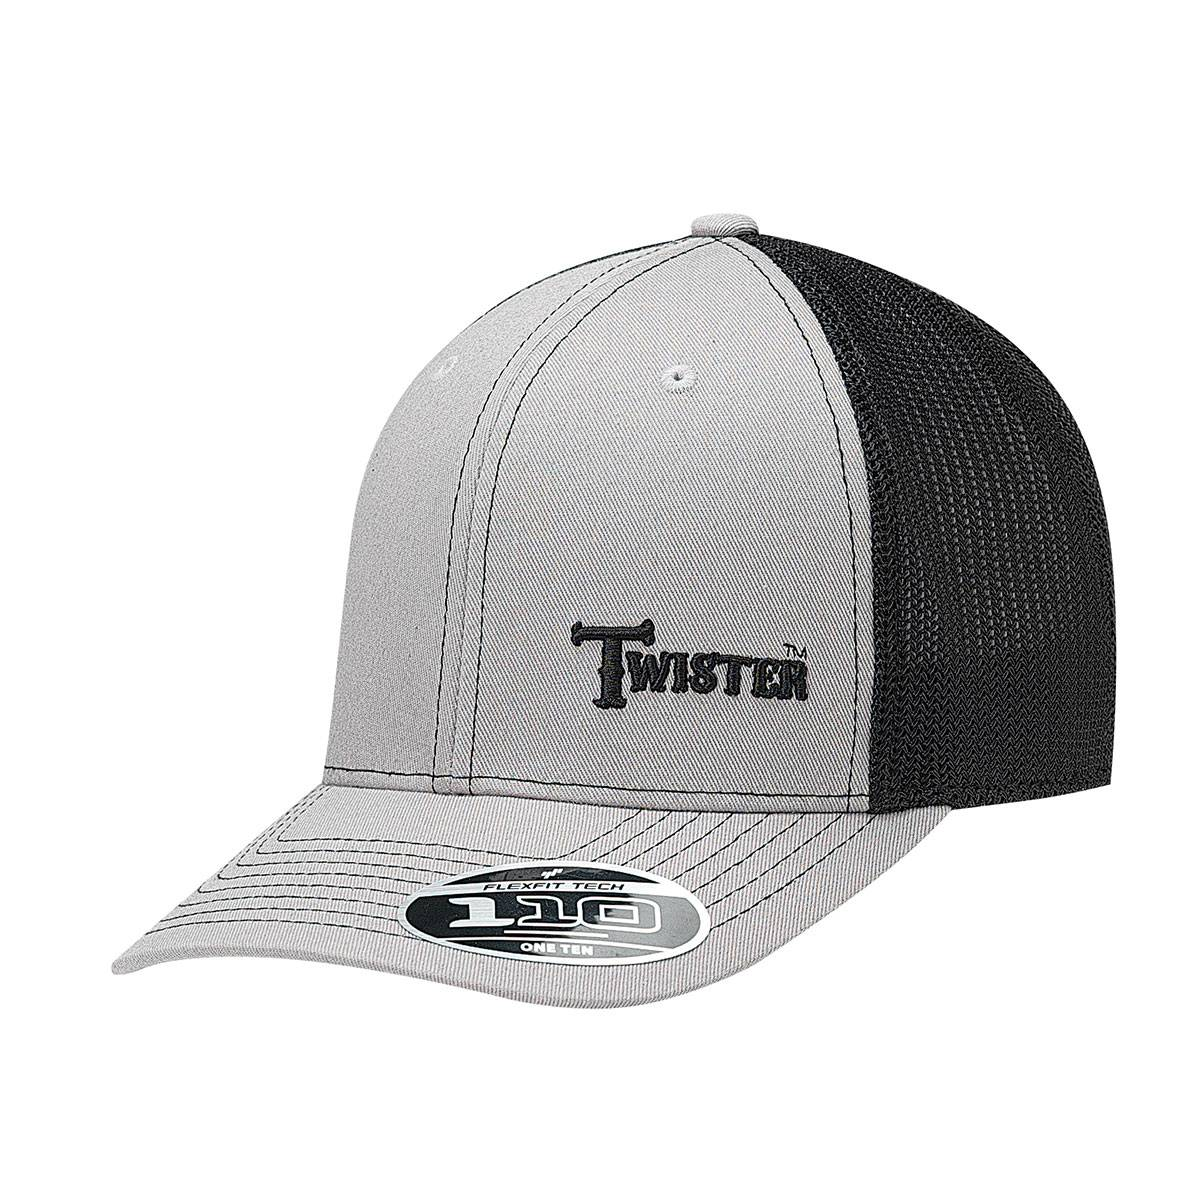 Twister Mens Text Flex Fit Contrast Stitch Cap